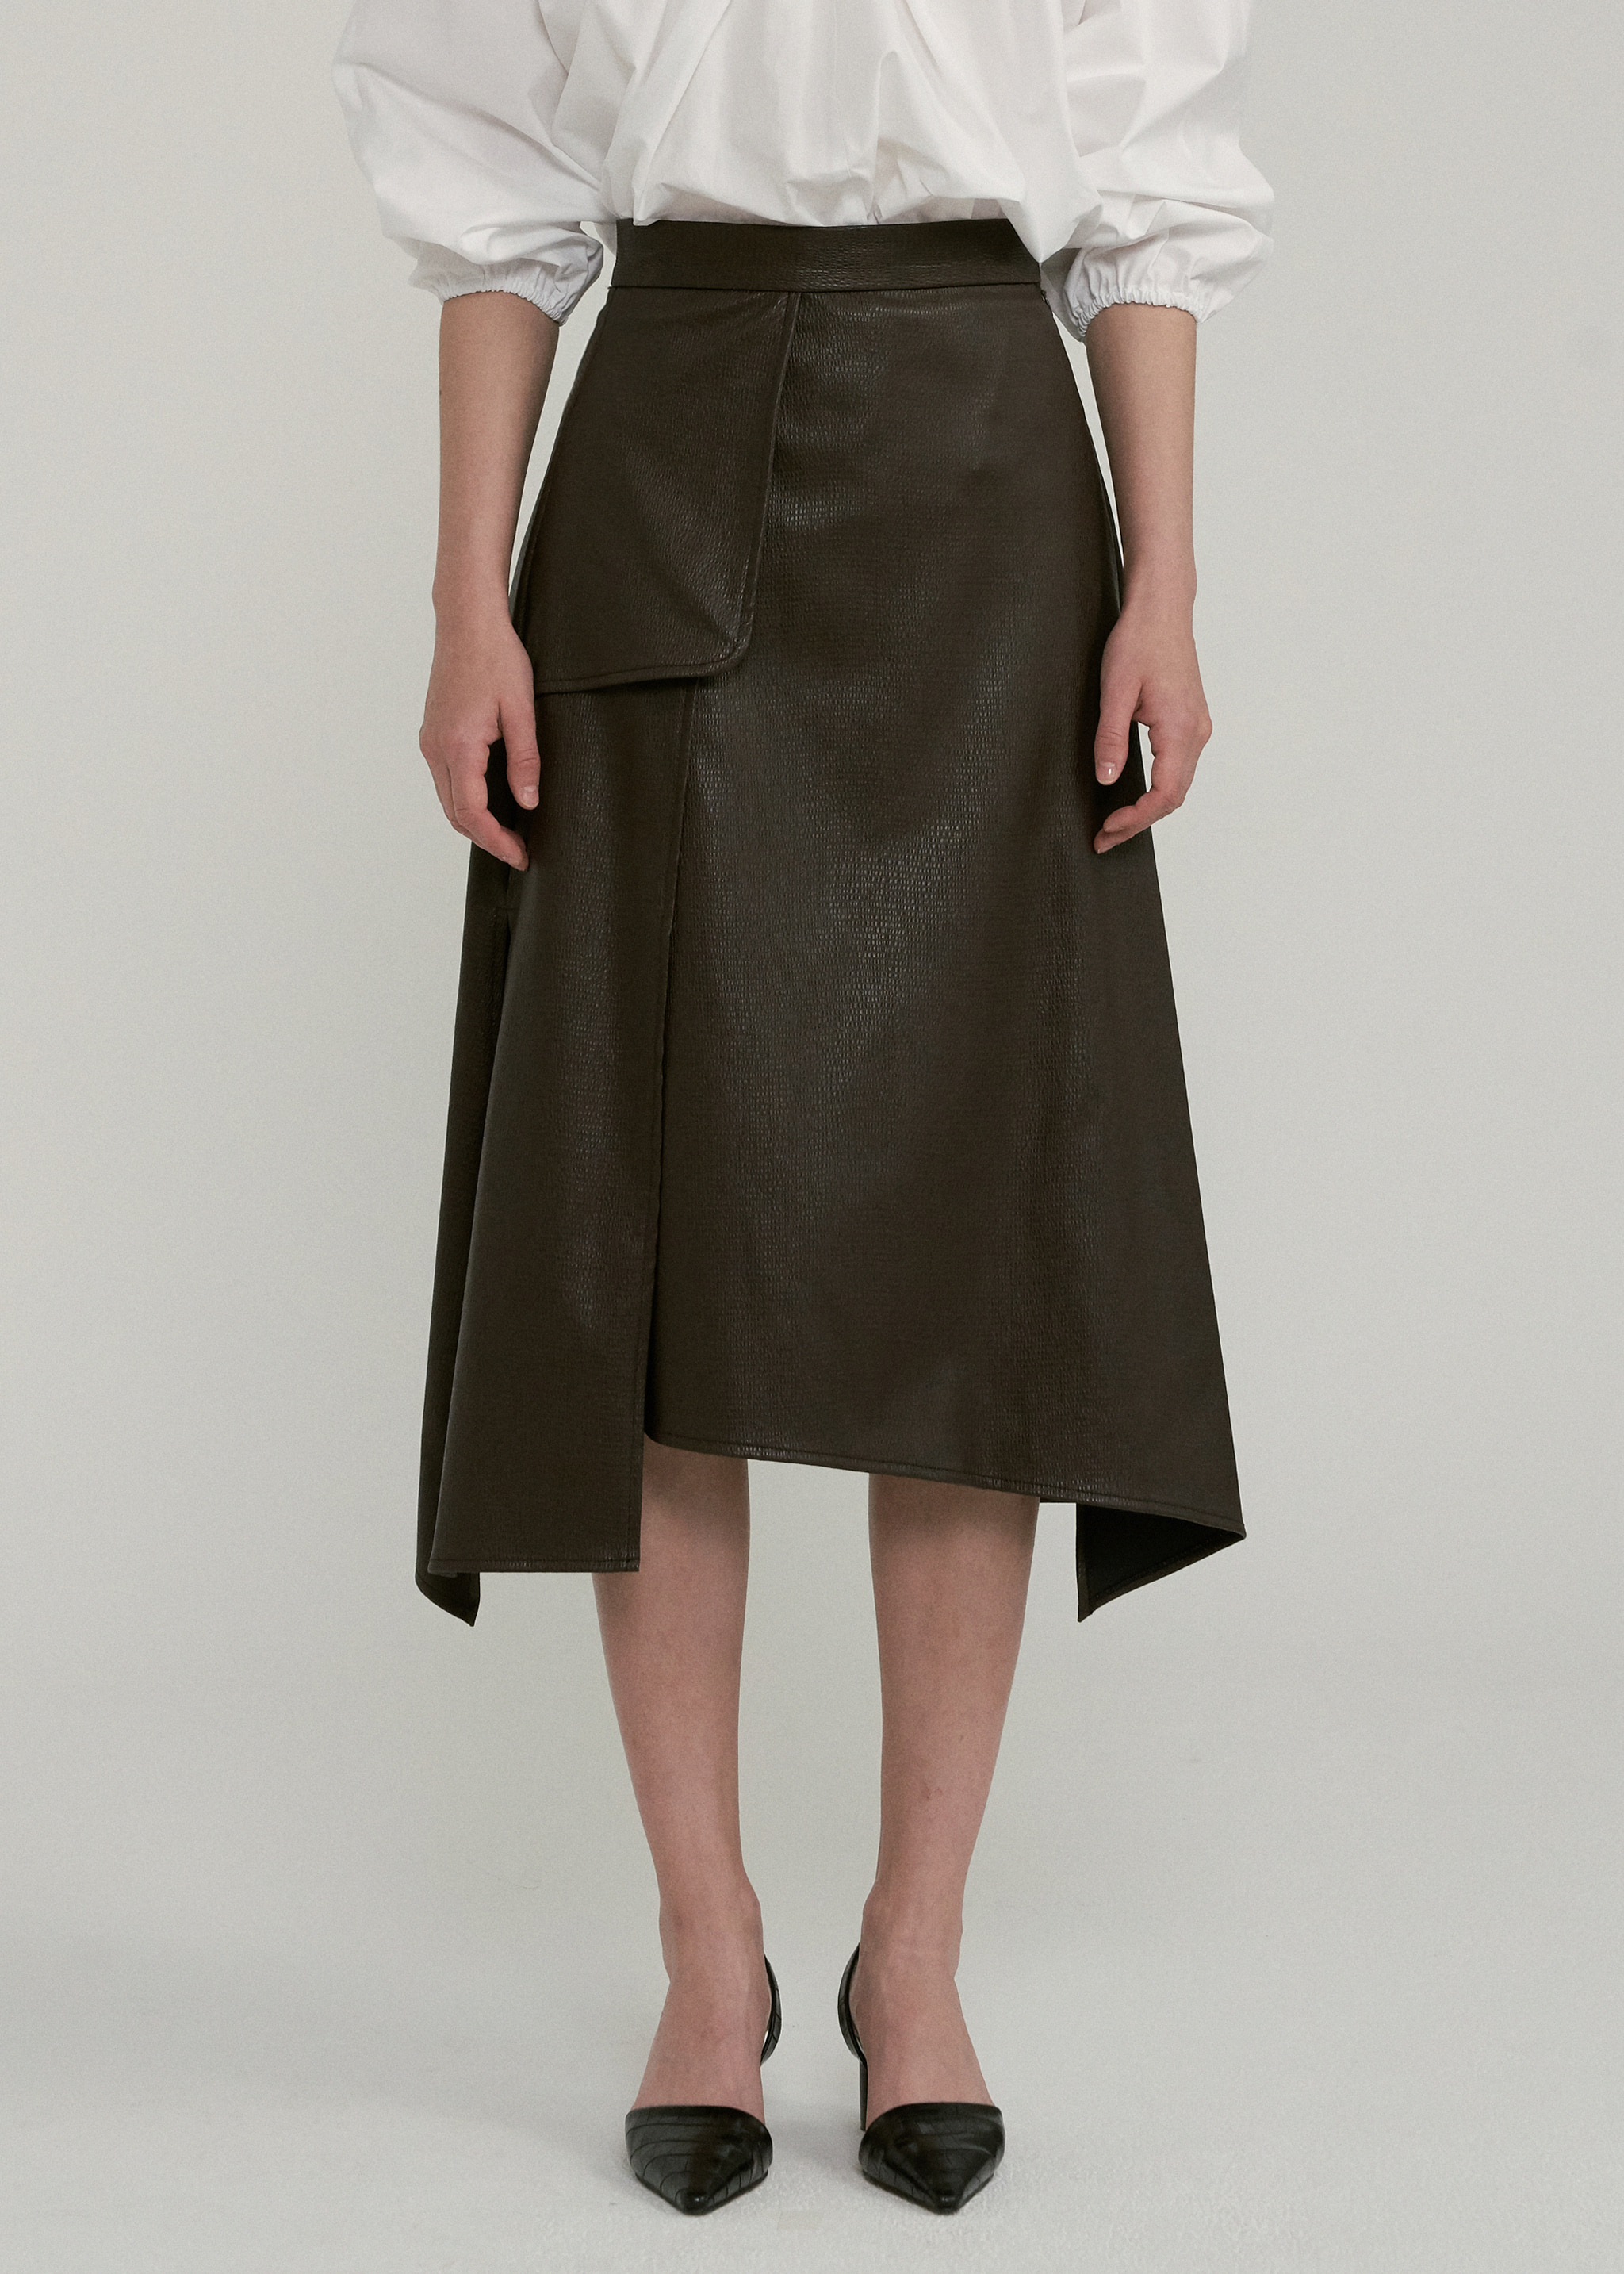 LEATHER SPLIT SKIRT (BROWN)